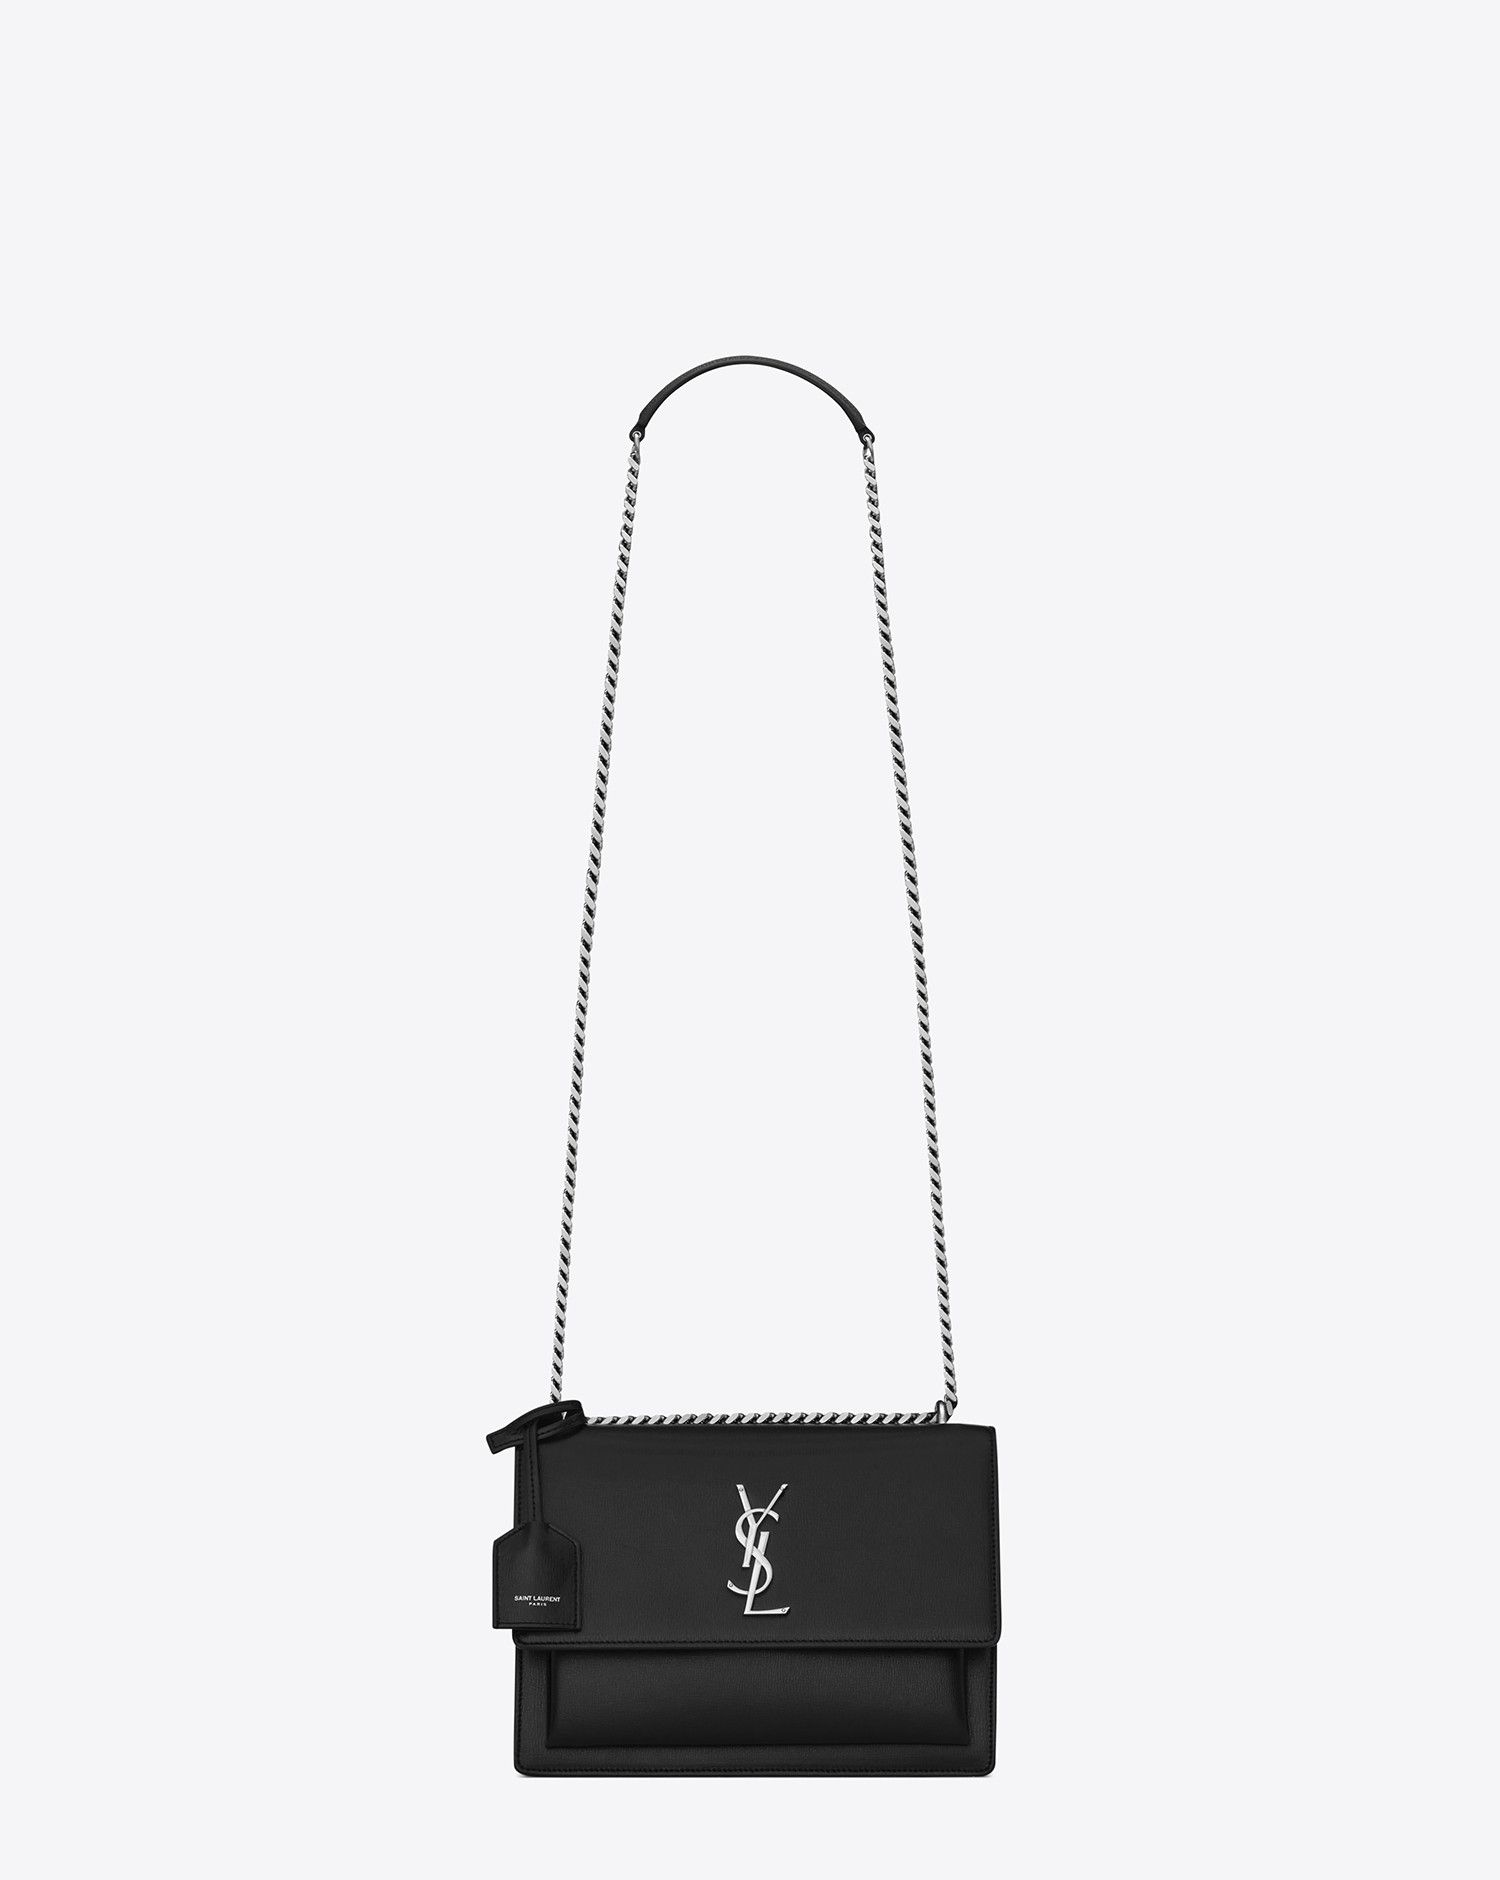 5a2e9cecb1 Saint Laurent Medium SUNSET MONOGRAM SAINT LAURENT Bag In Black